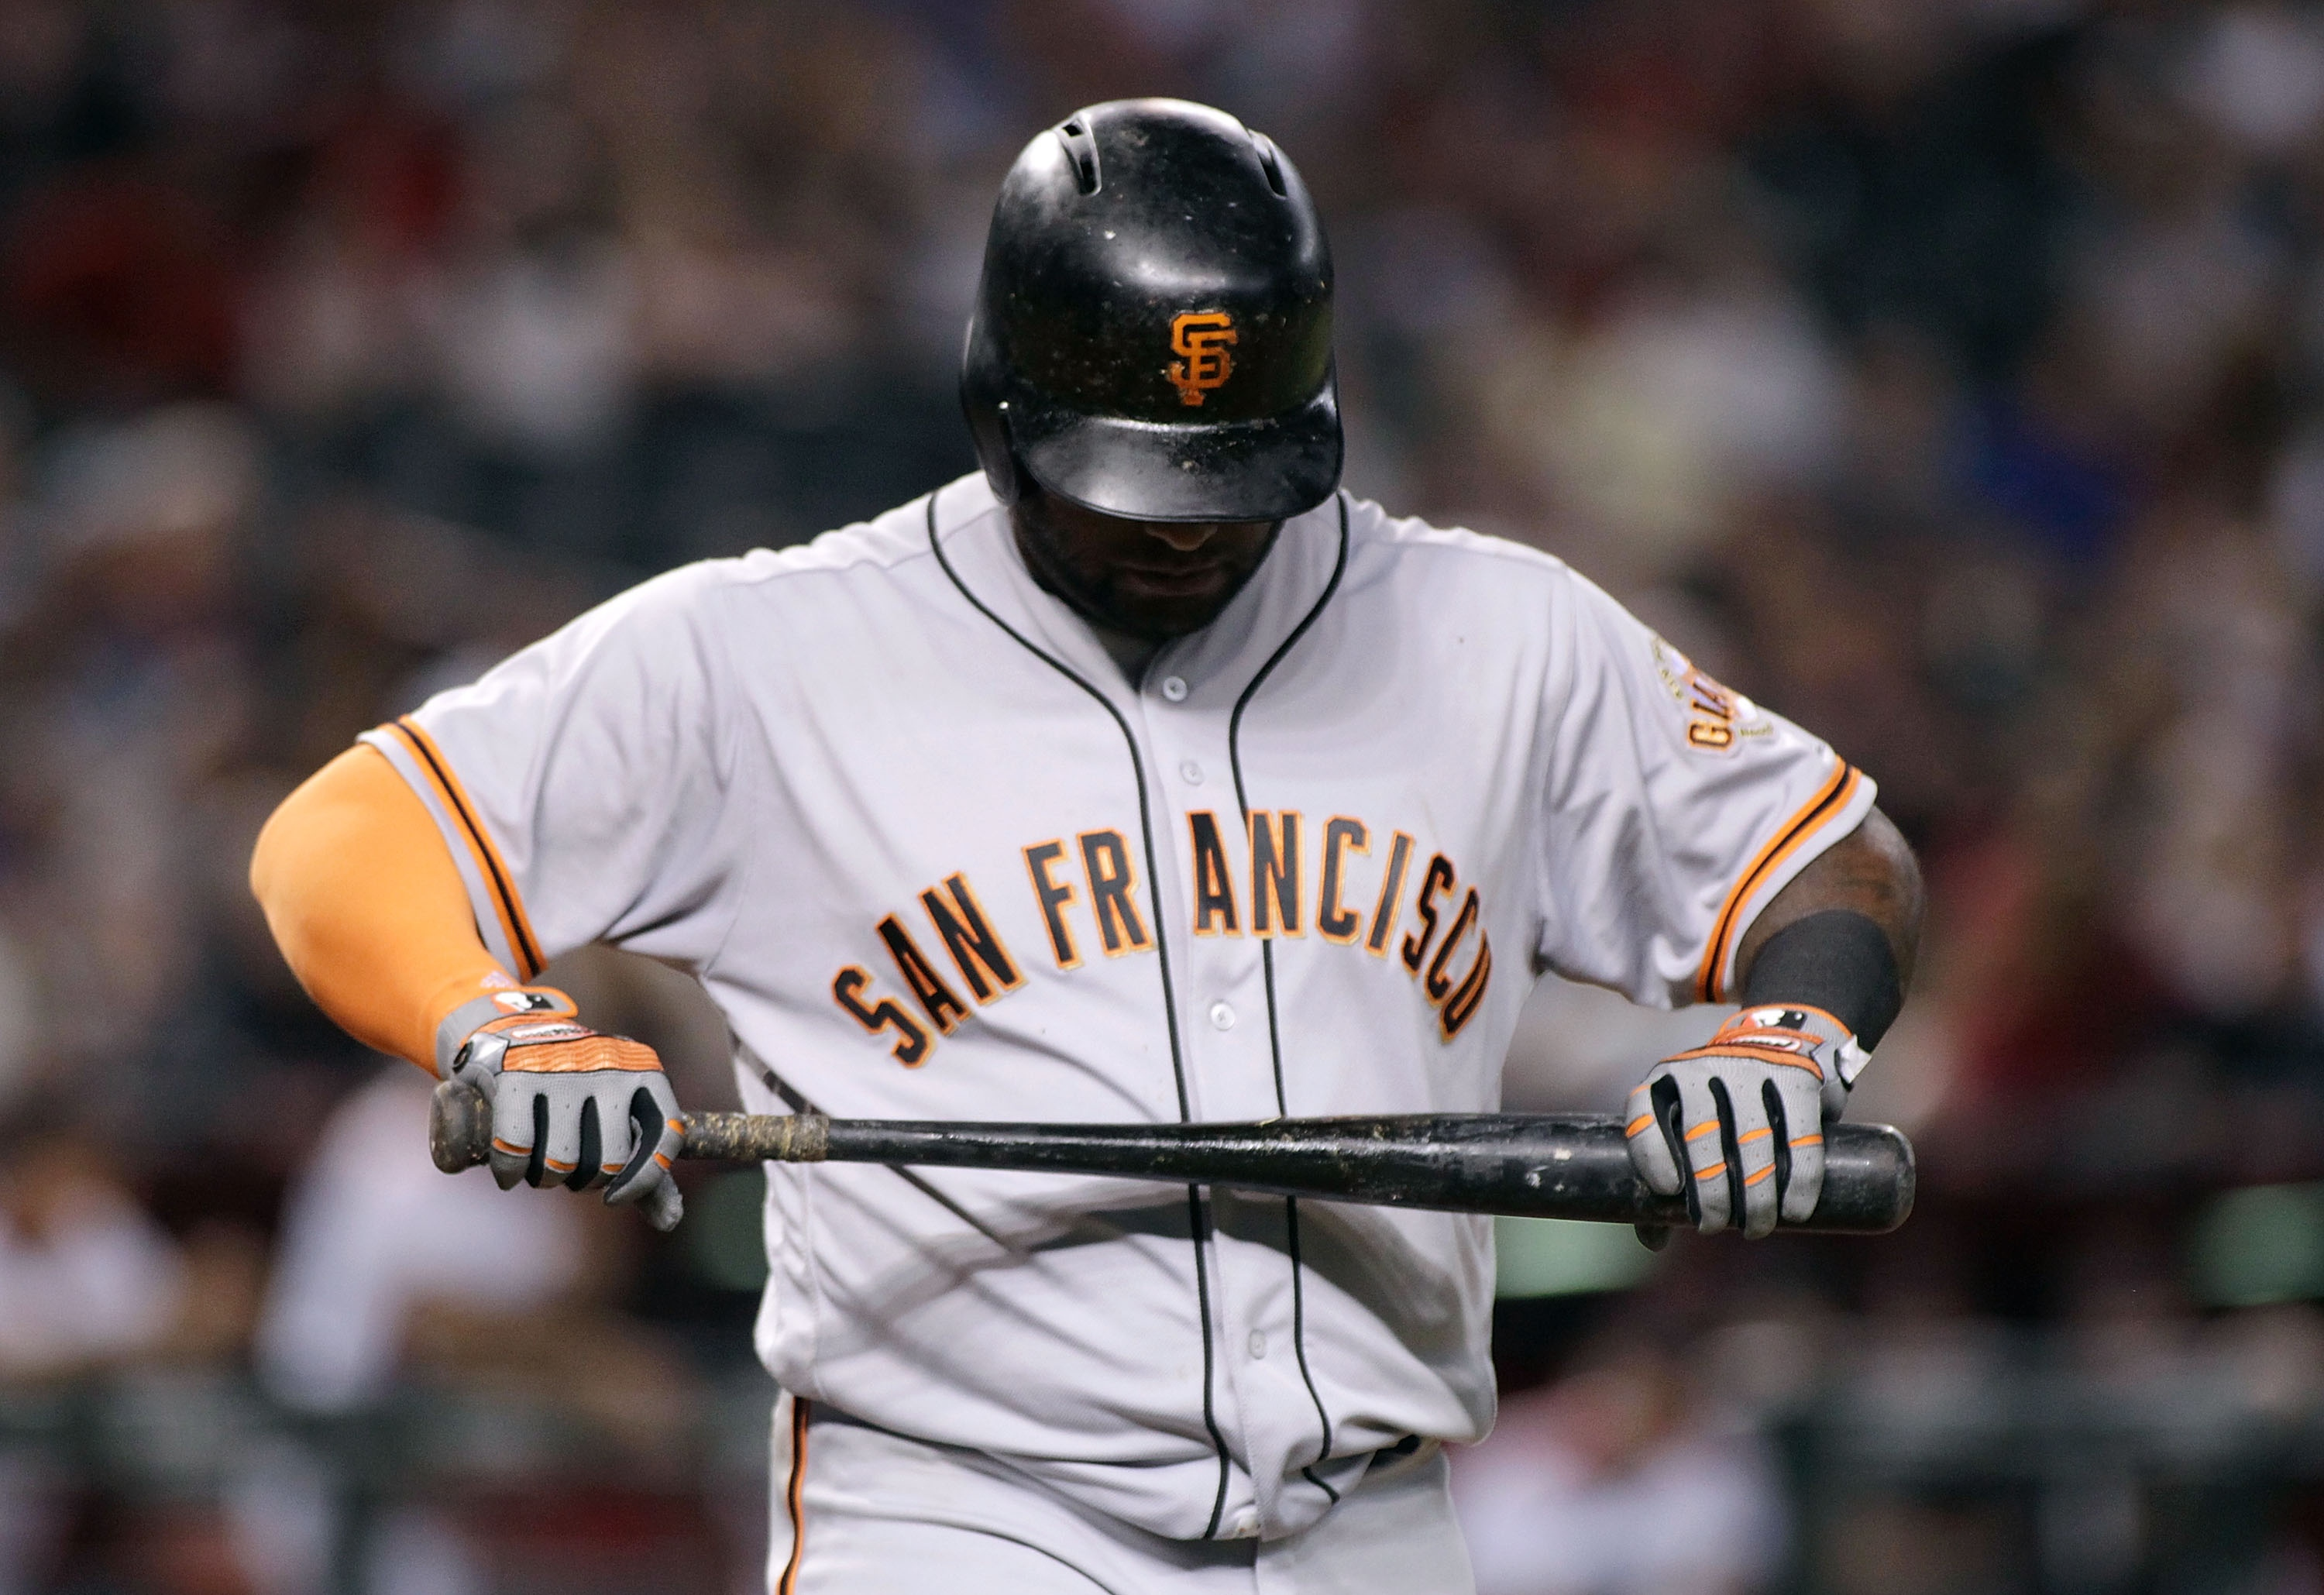 Pablo Sandoval's walk-off homer costs Giants No. 1 pick in MLB draft